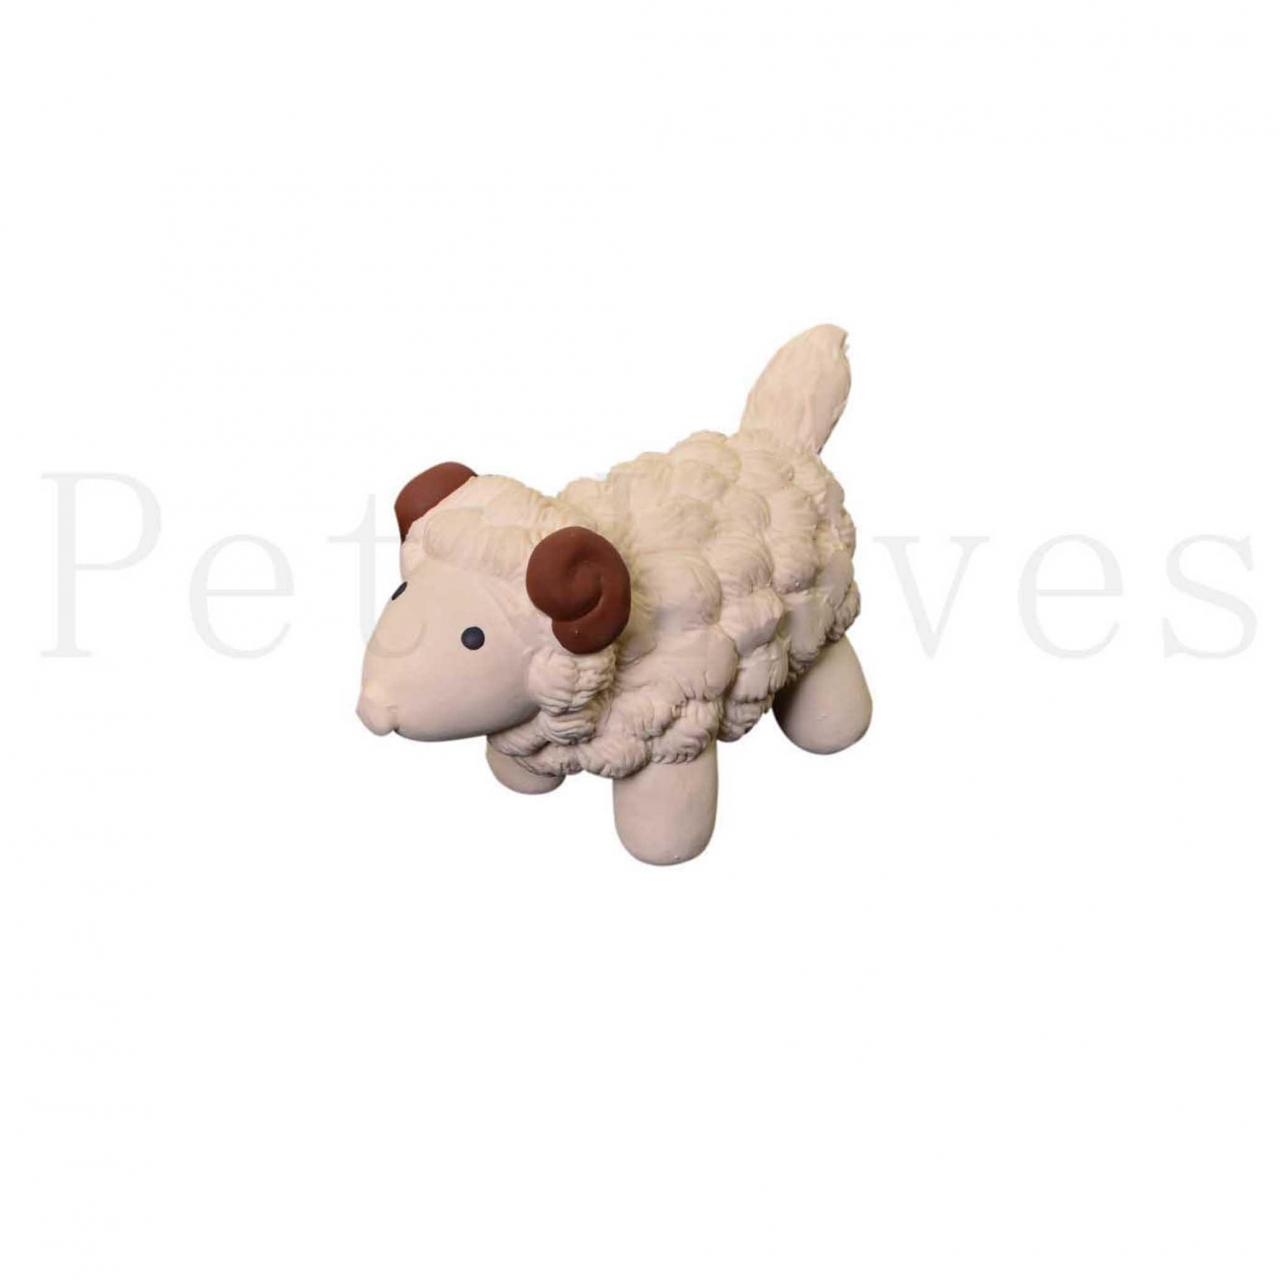 ODM/OEM Squeeze Dog Toy - Sheep